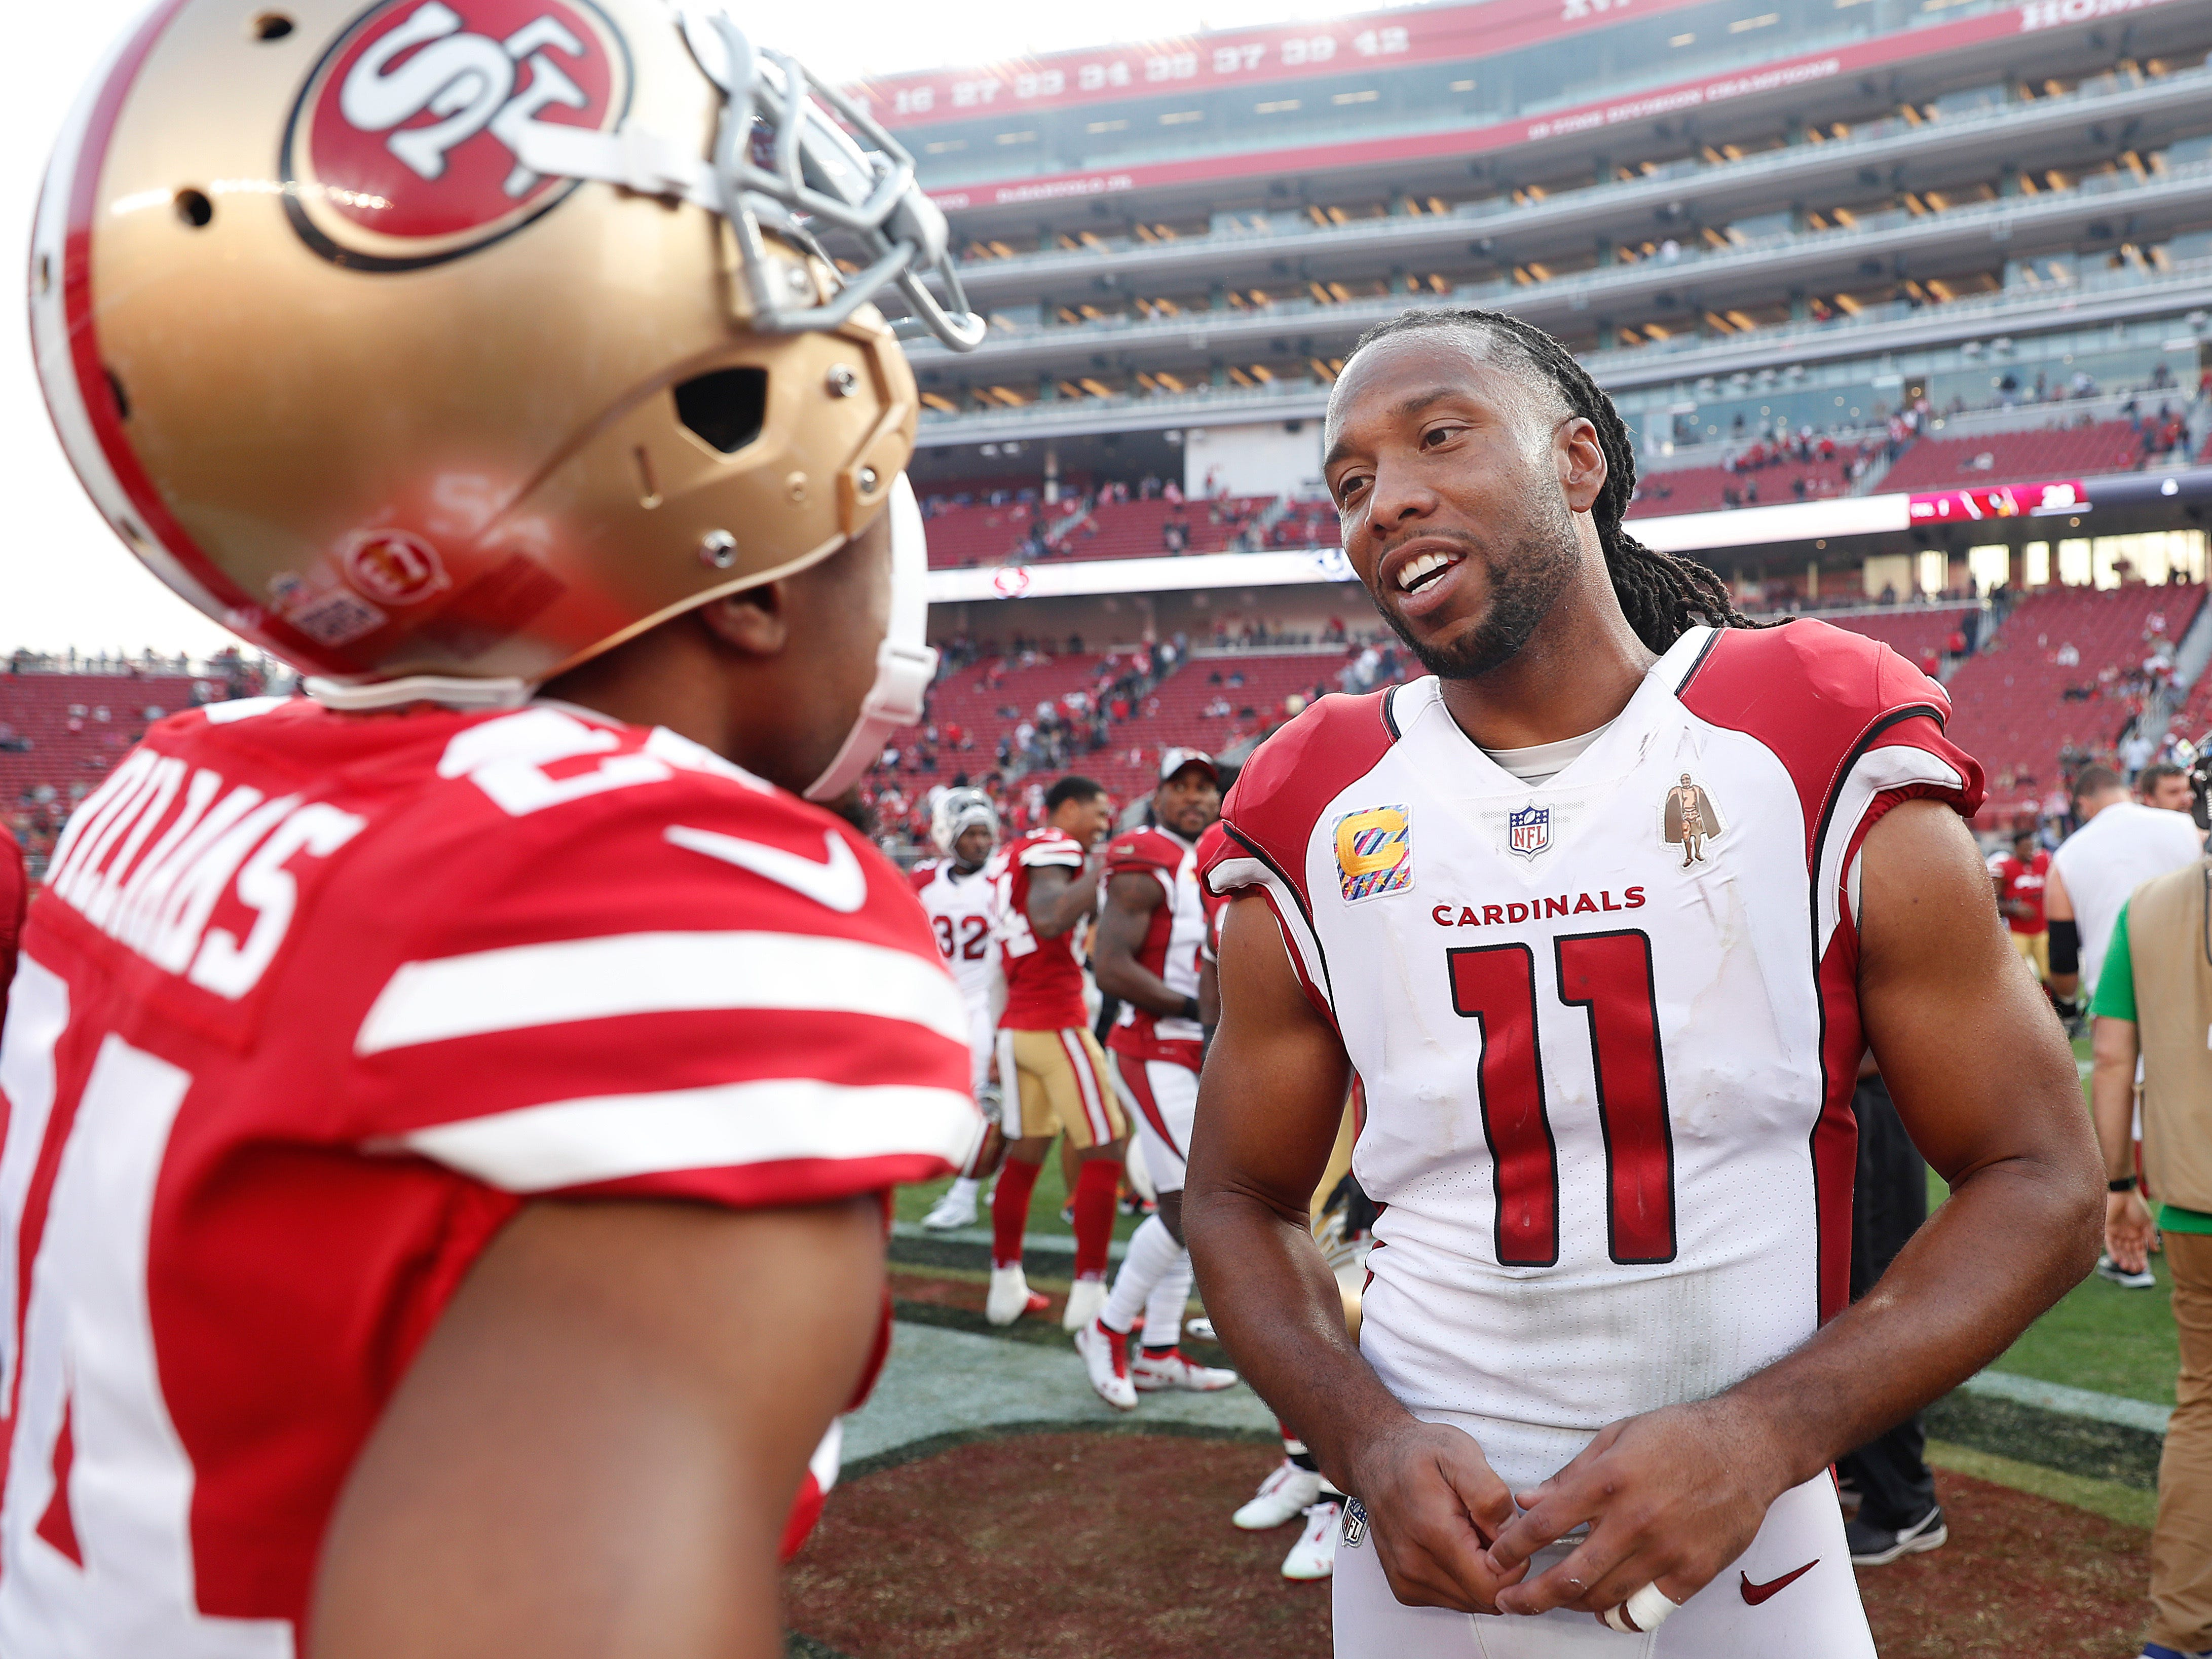 Arizona Cardinals wide receiver Larry Fitzgerald (11) talks with San Francisco 49ers defensive back K'Waun Williams after an NFL football game in Santa Clara, Calif., Sunday, Oct. 7, 2018.